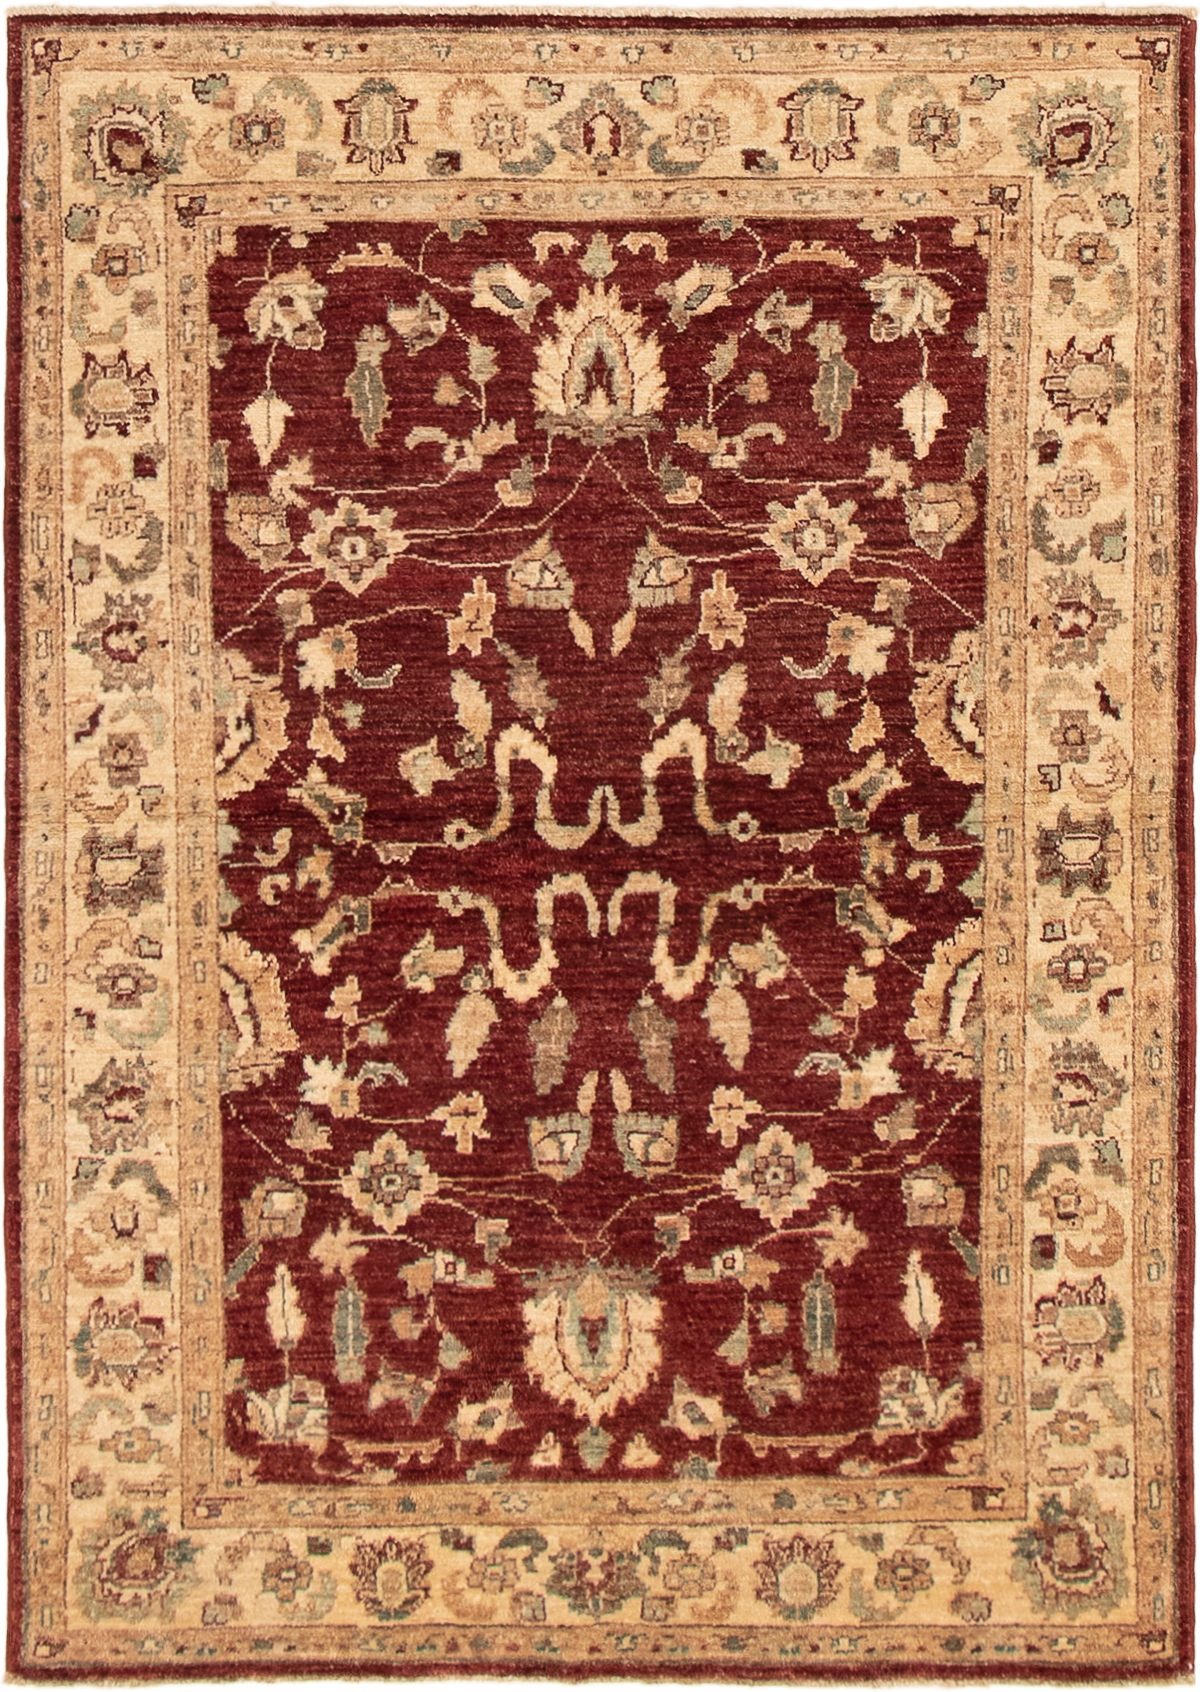 """Hand-knotted Chobi Finest Dark Red Wool Rug 4'2"""" x 5'10"""" Size: 4'2"""" x 5'10"""""""